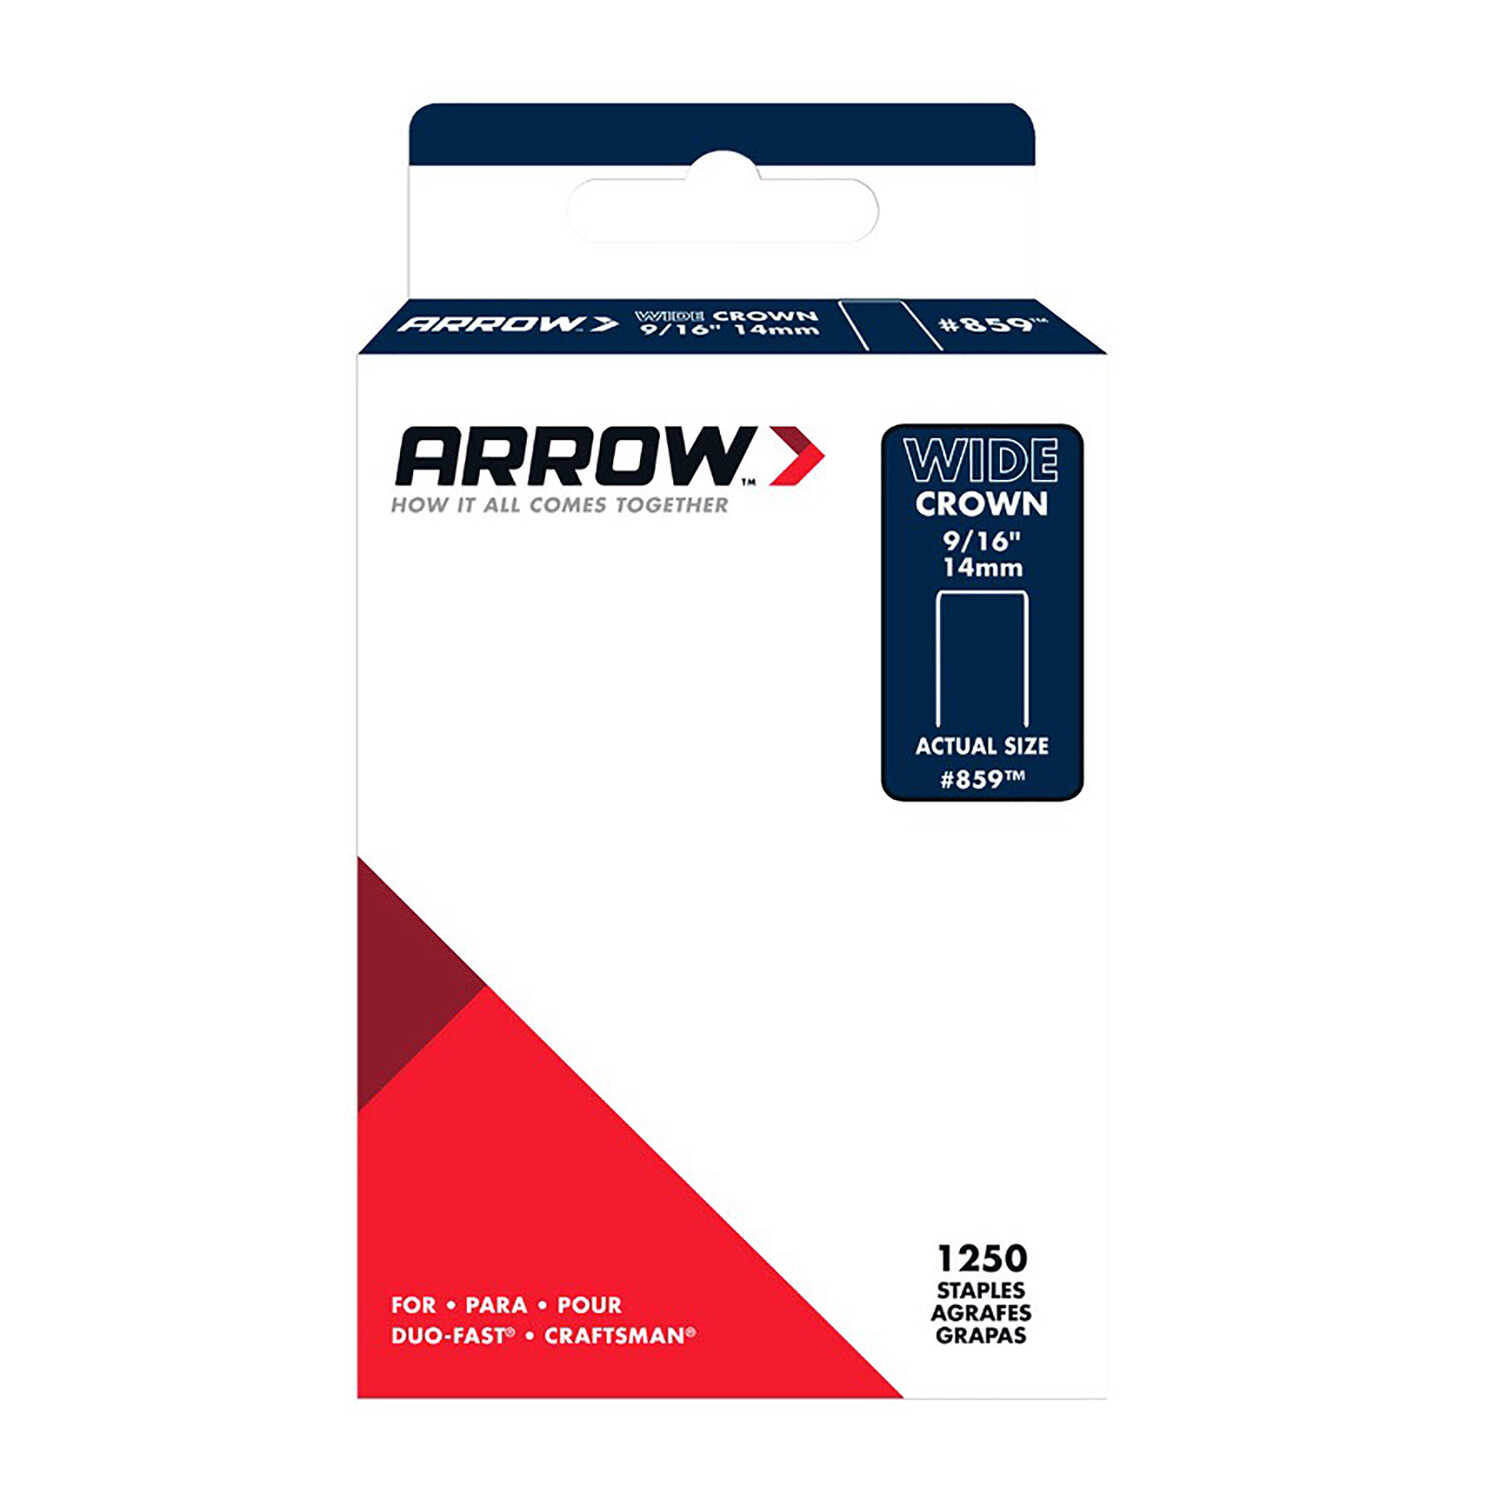 Arrow Fastener  #859  9/16 in. L x 1/2 in. W Wide Crown  Standard Staples  1250 pk